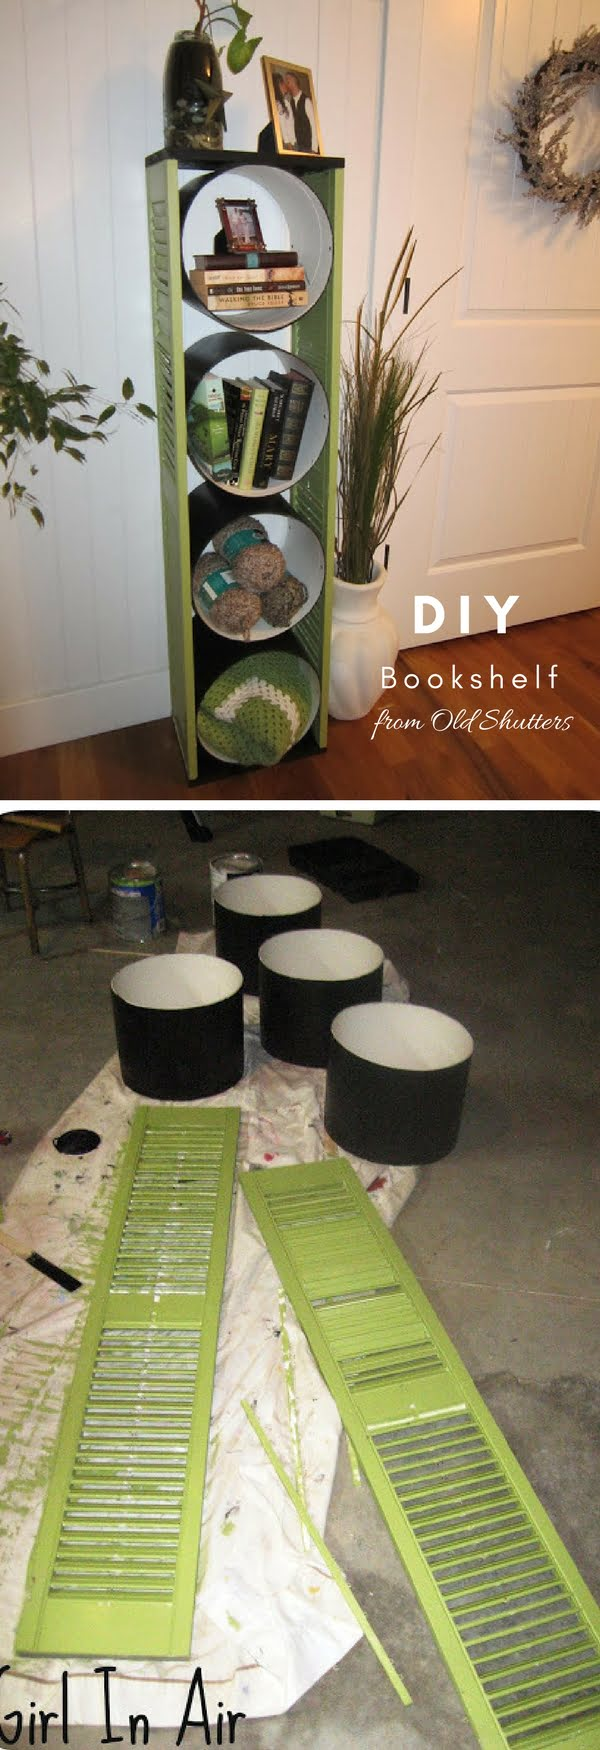 Check out how to build a DIY bookshelf from old shutters